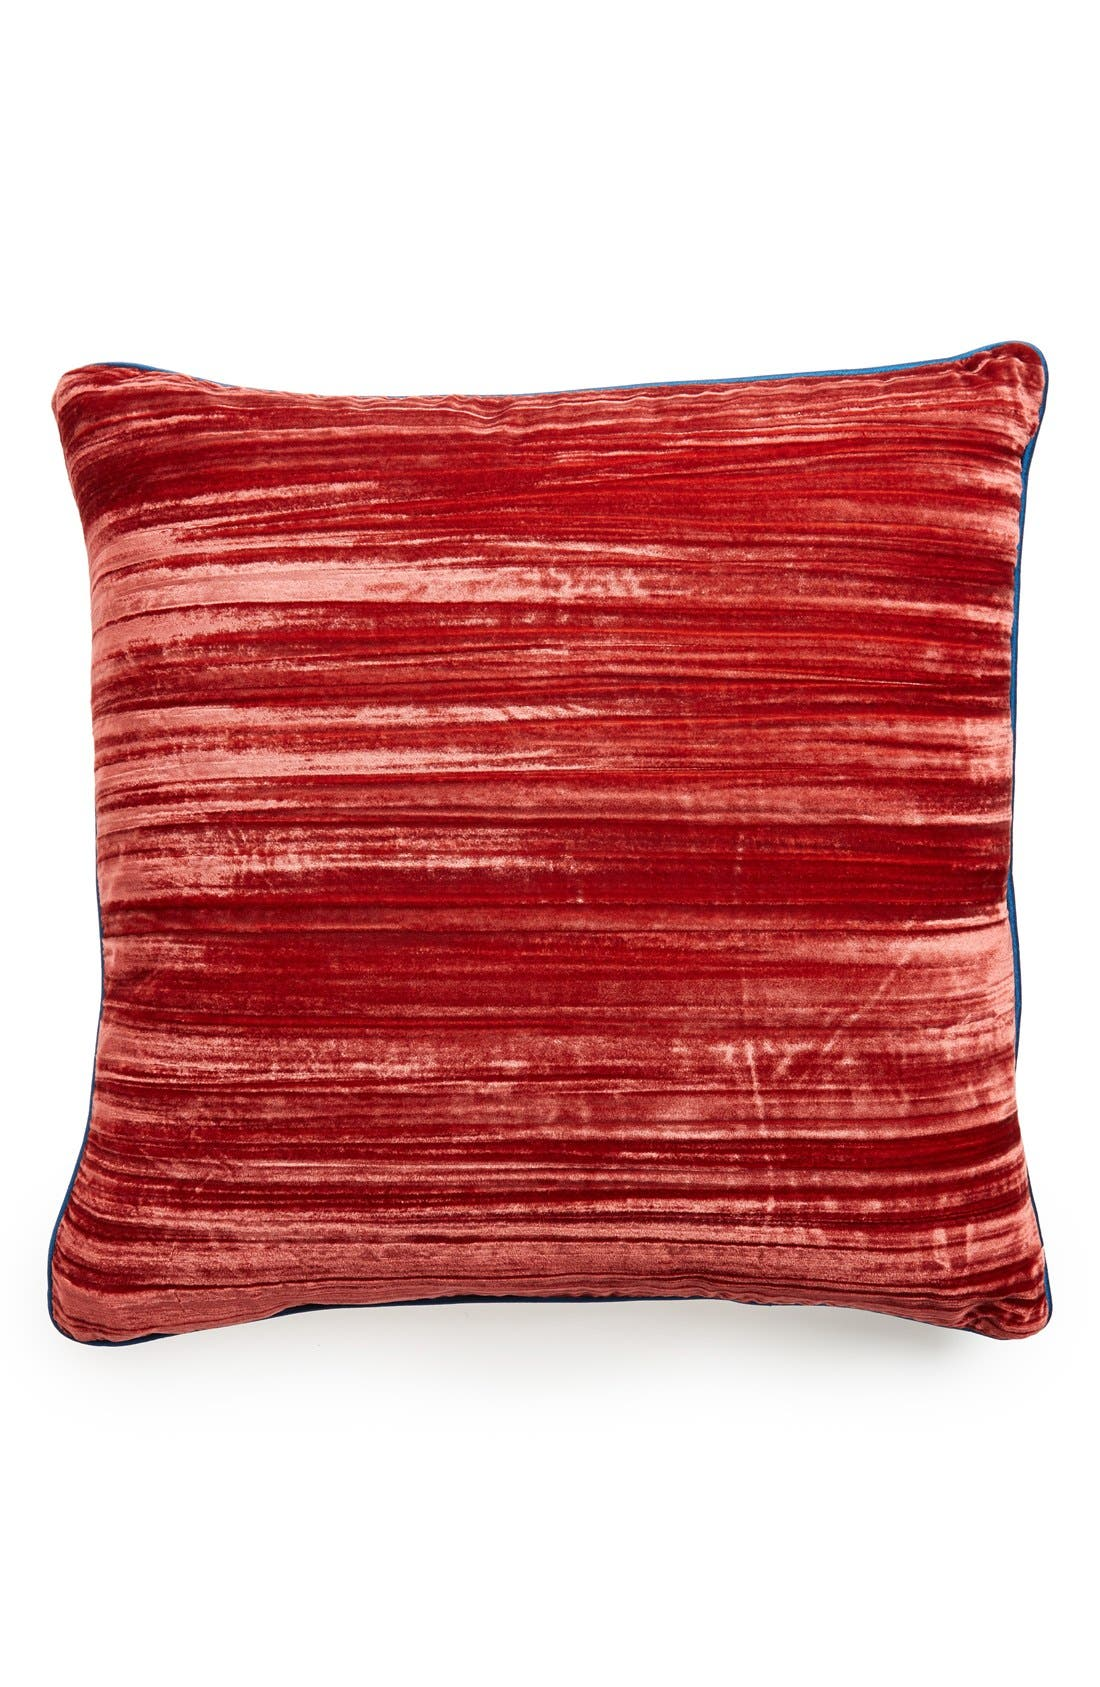 Main Image - Tracy Porter® For Poetic Wanderlust® 'Coral' Velvet Pillow